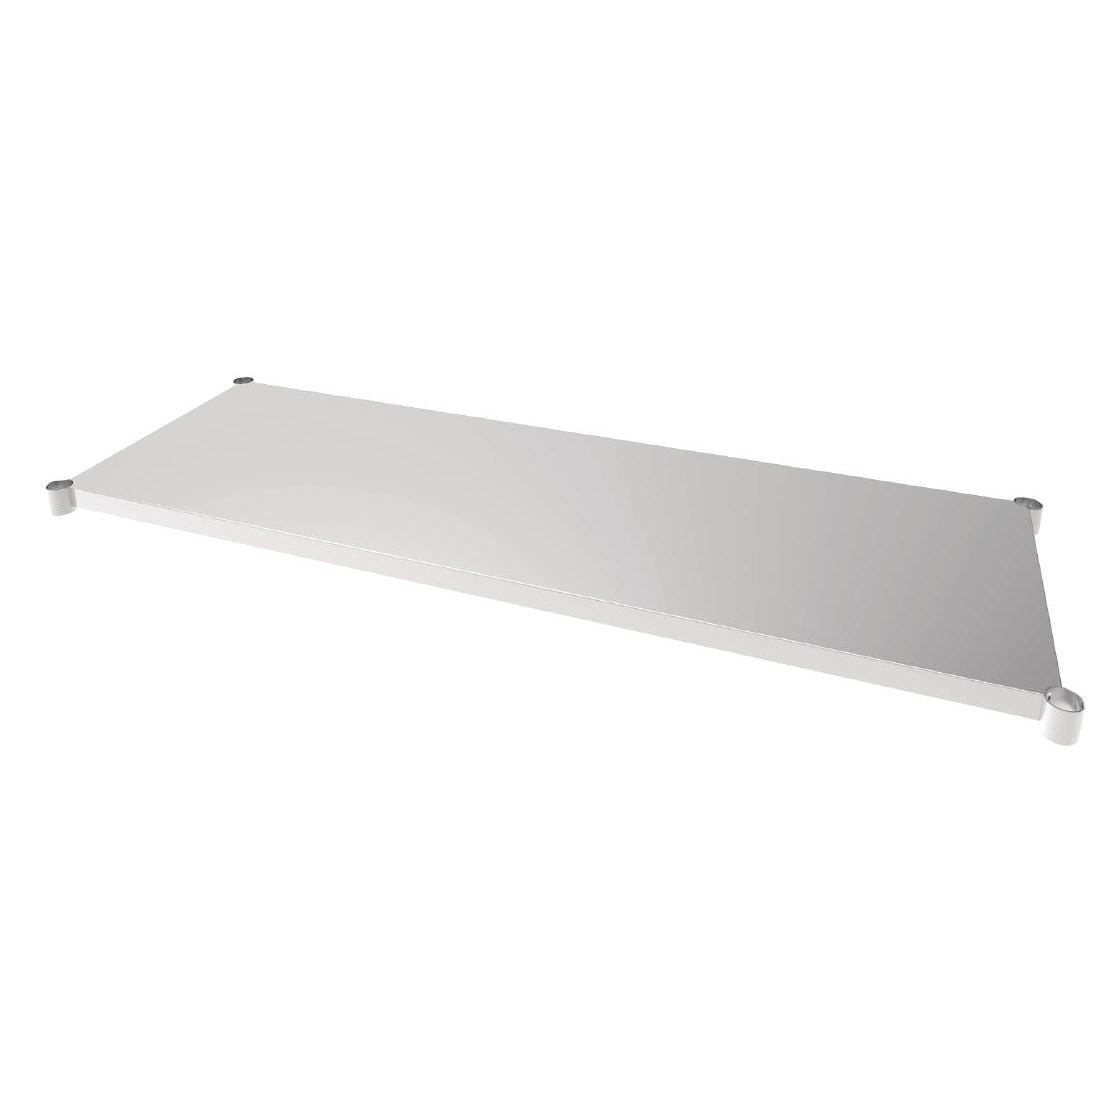 Vogue Stainless Steel Table Shelf 700x1800mm